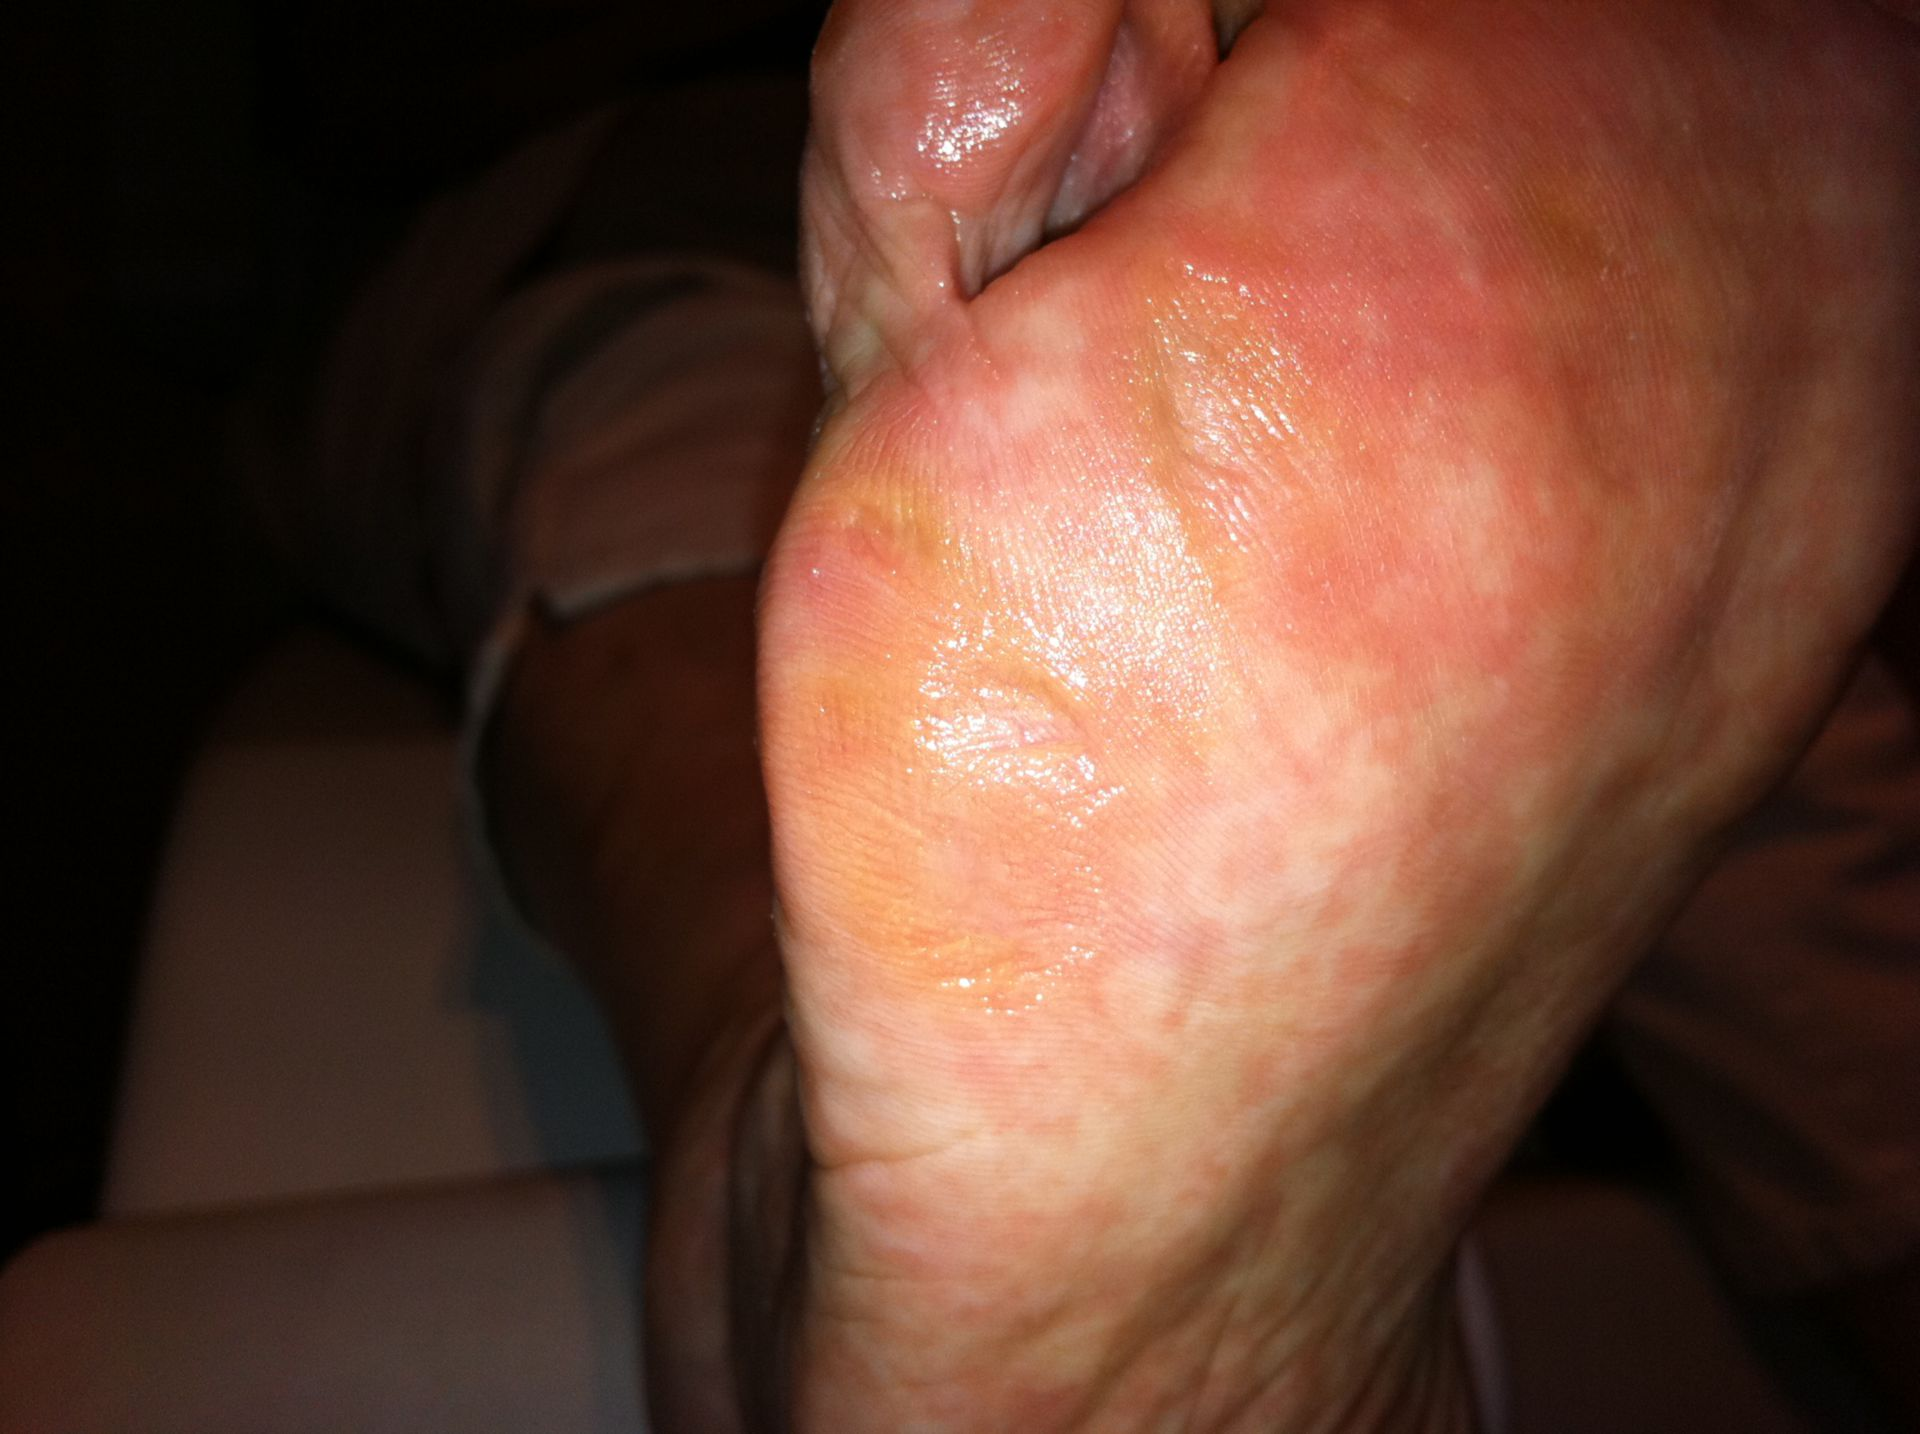 Callus after removal